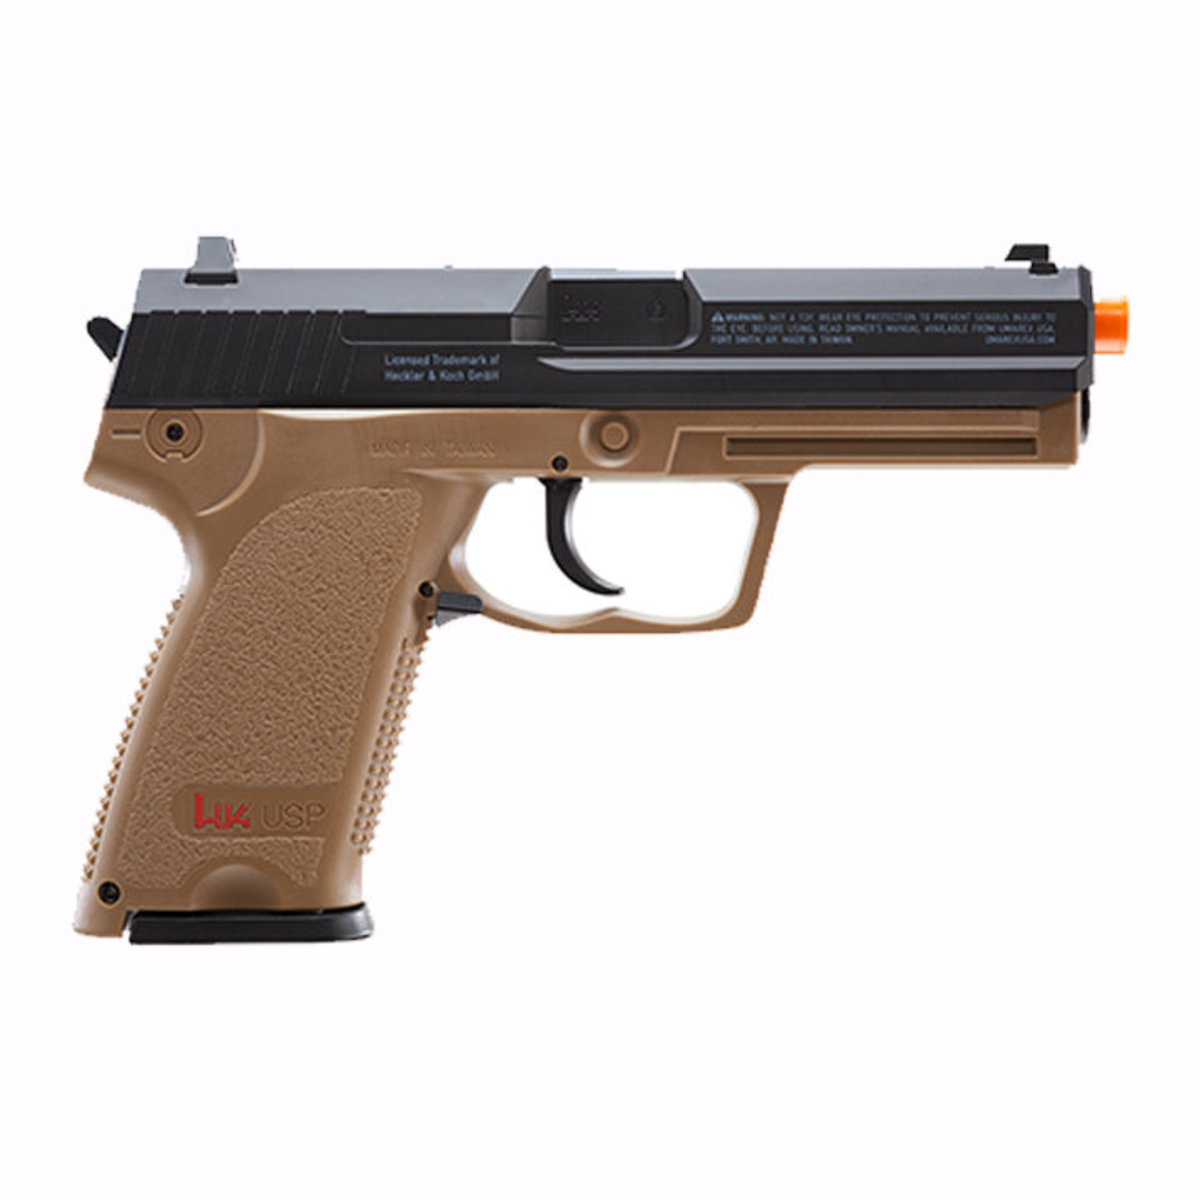 View larger image of Umarex H&K USP Full Size CO2 Non-Blowback Airsoft Pistol